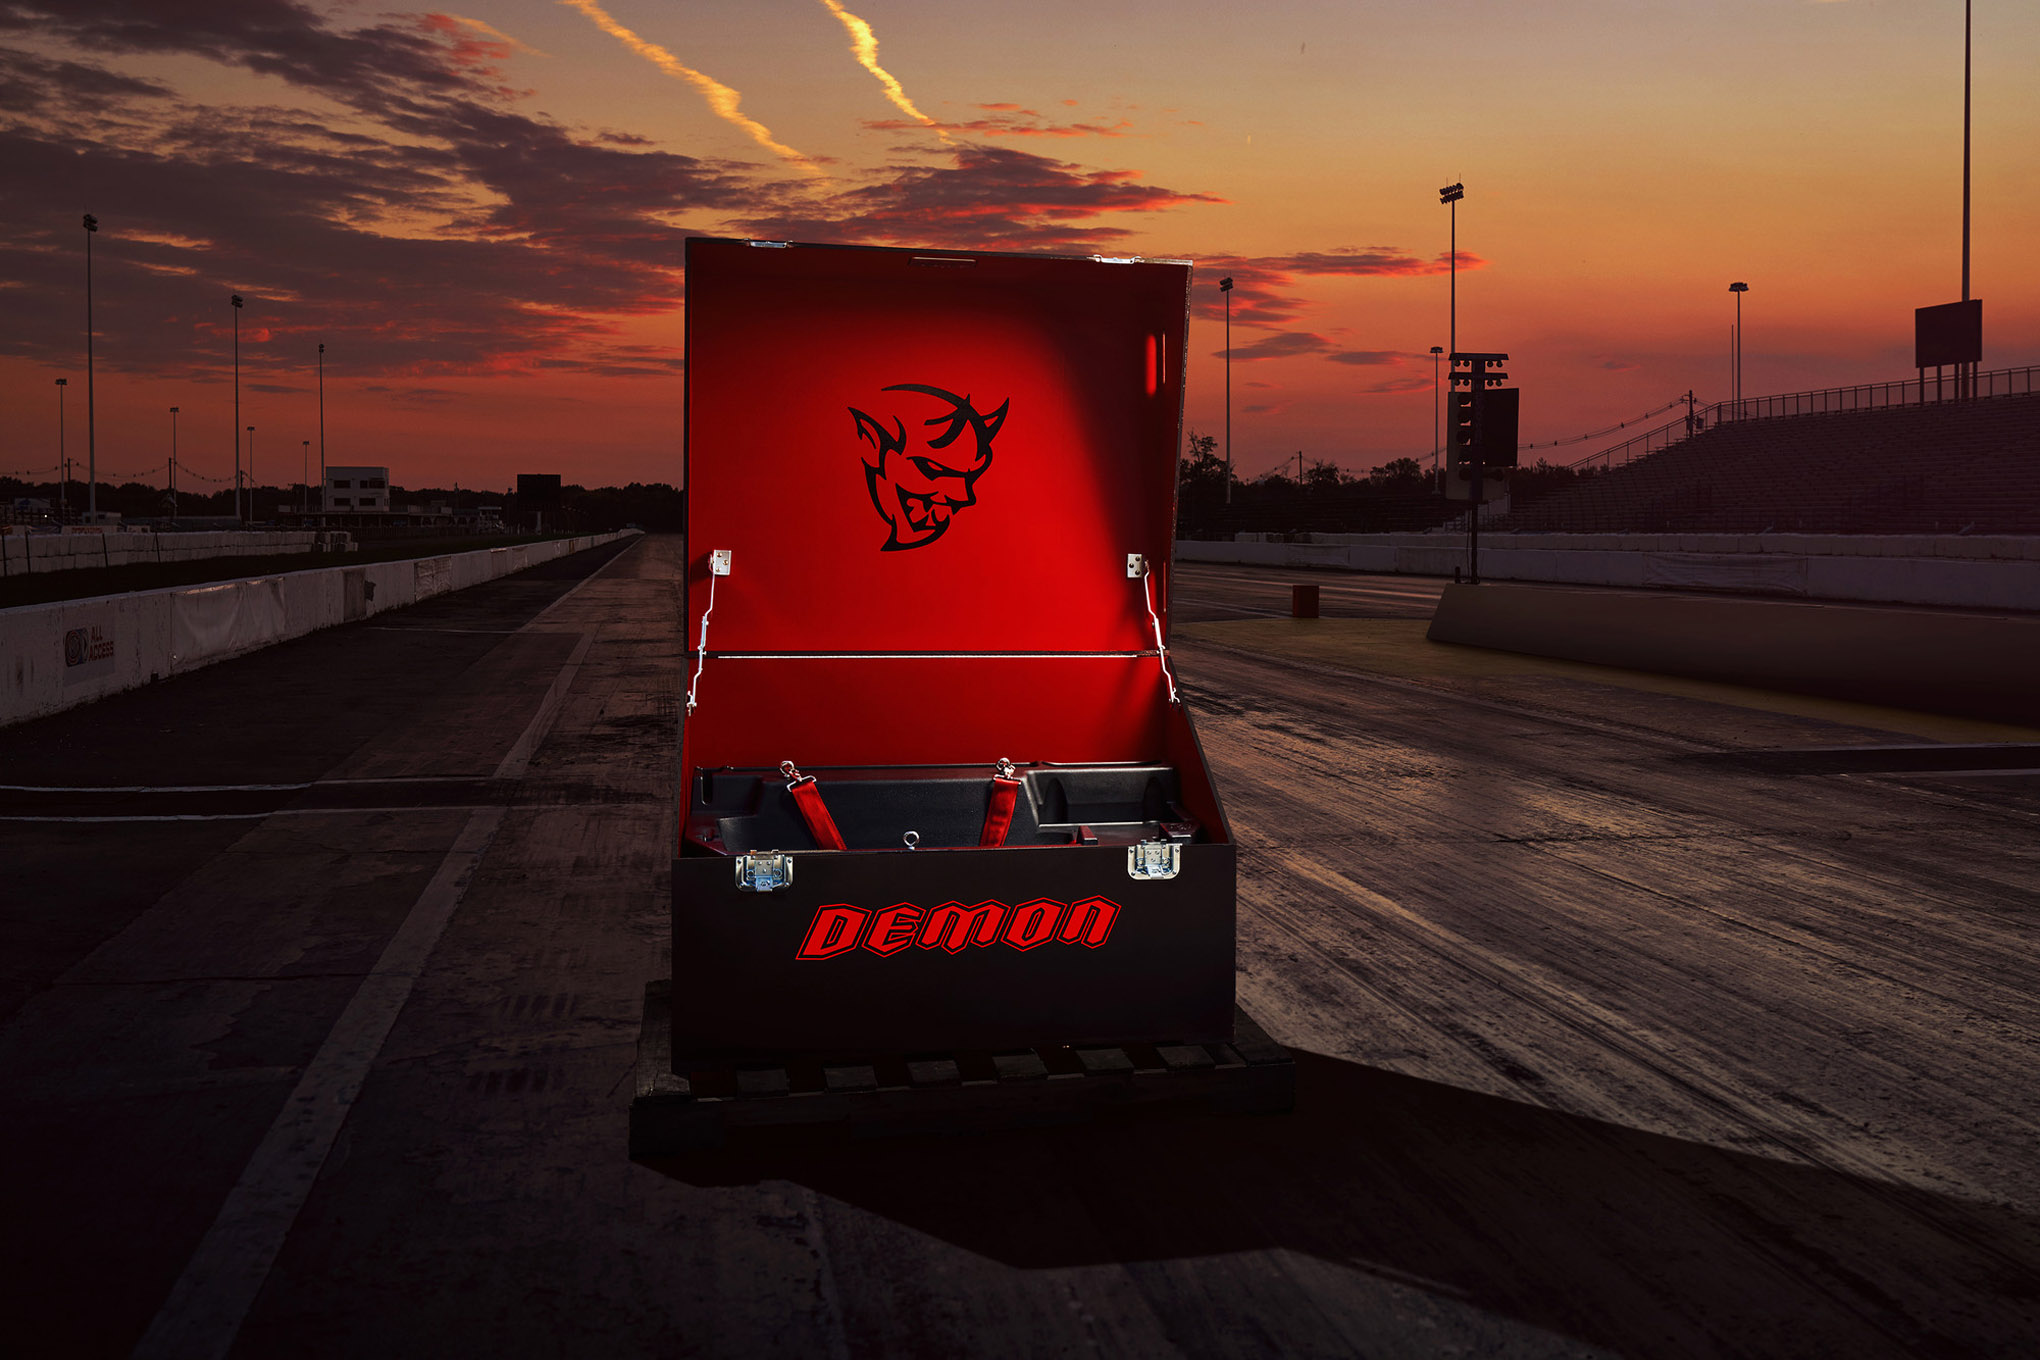 The Demon Crate holds 18 components that maximize the 2018 Dodge